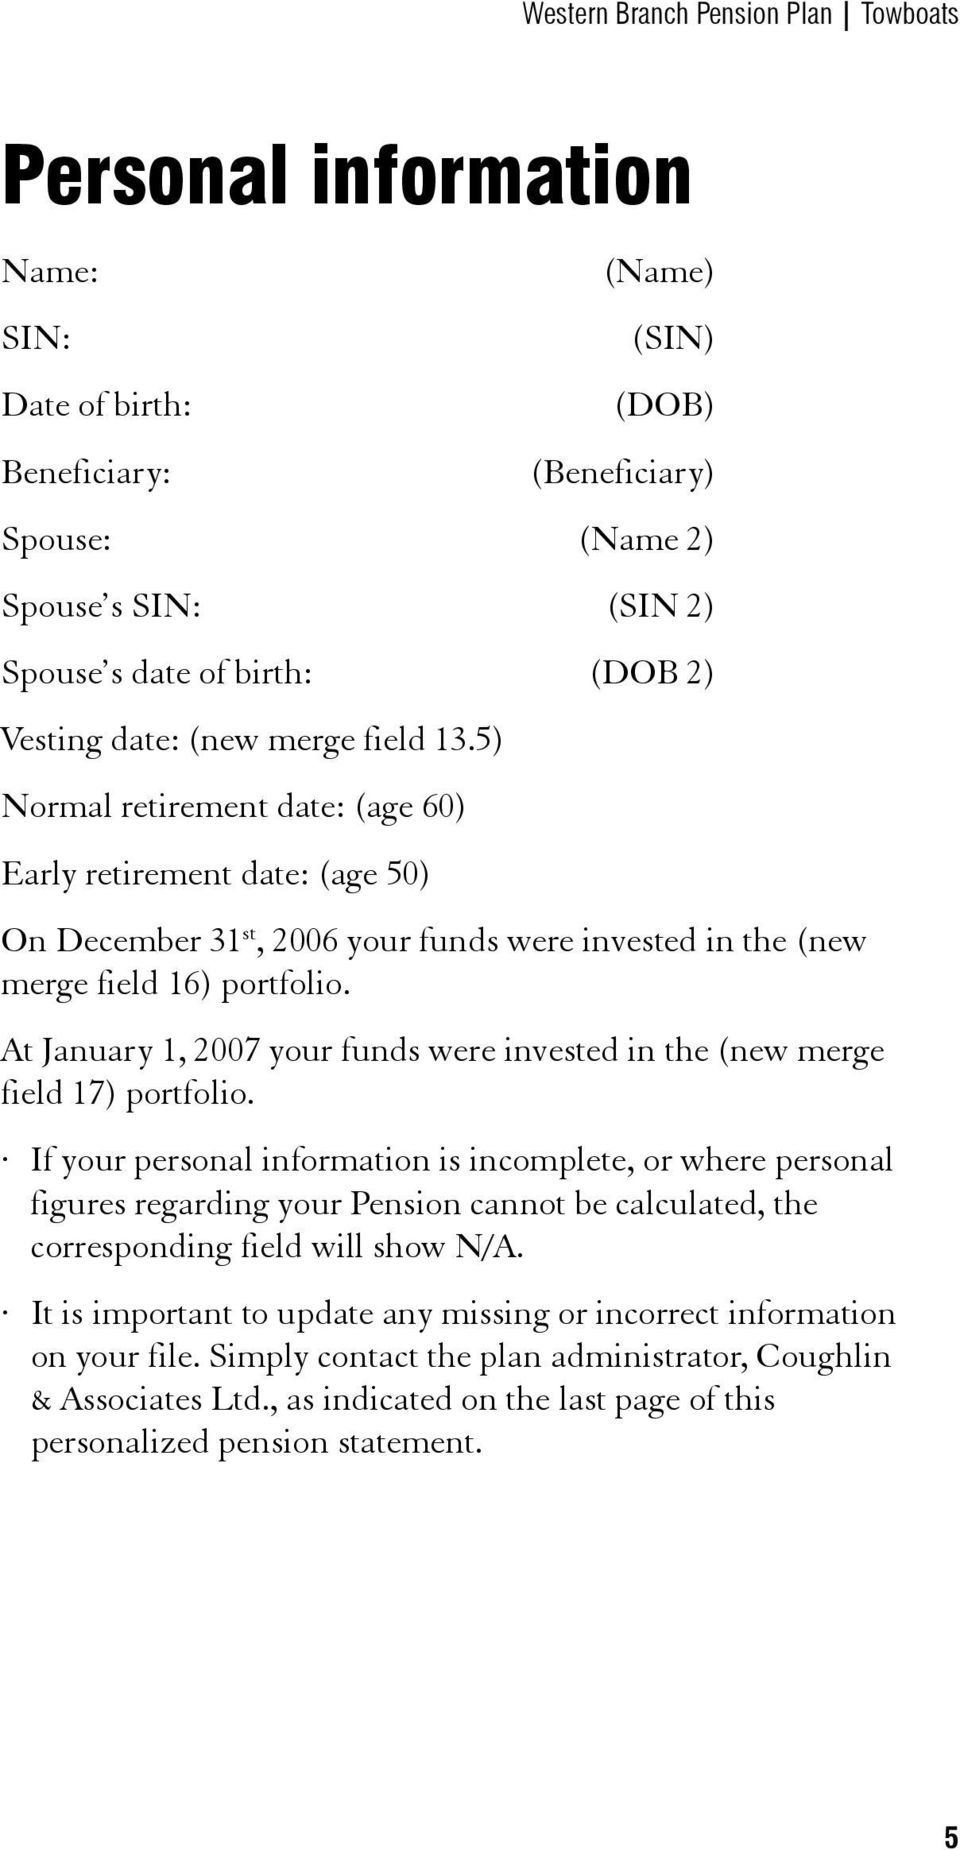 At January 1, 2007 your funds were invested in the (new merge field 17) portfolio.